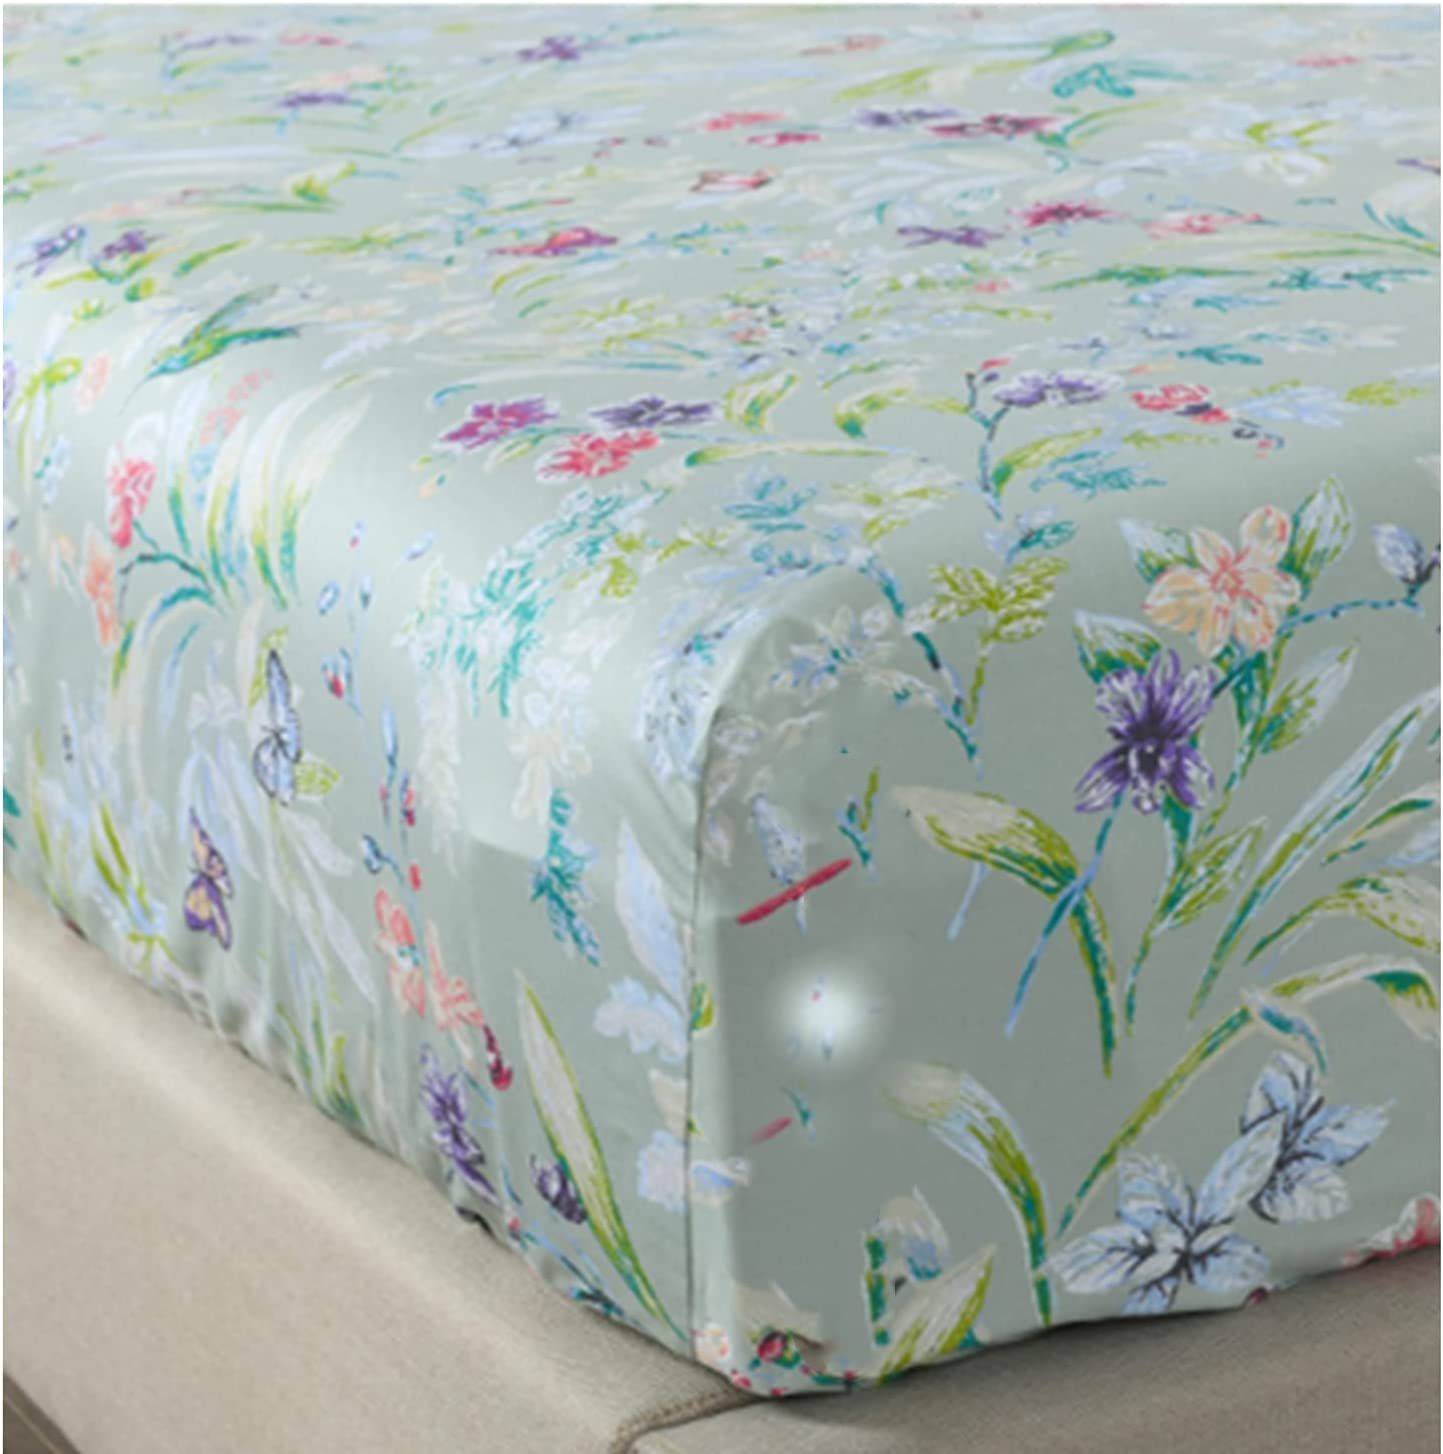 WINLIFE Twin Fitted Sheet Columbus Mall Only - 100% Deep Cotton Staple Max 40% OFF Long